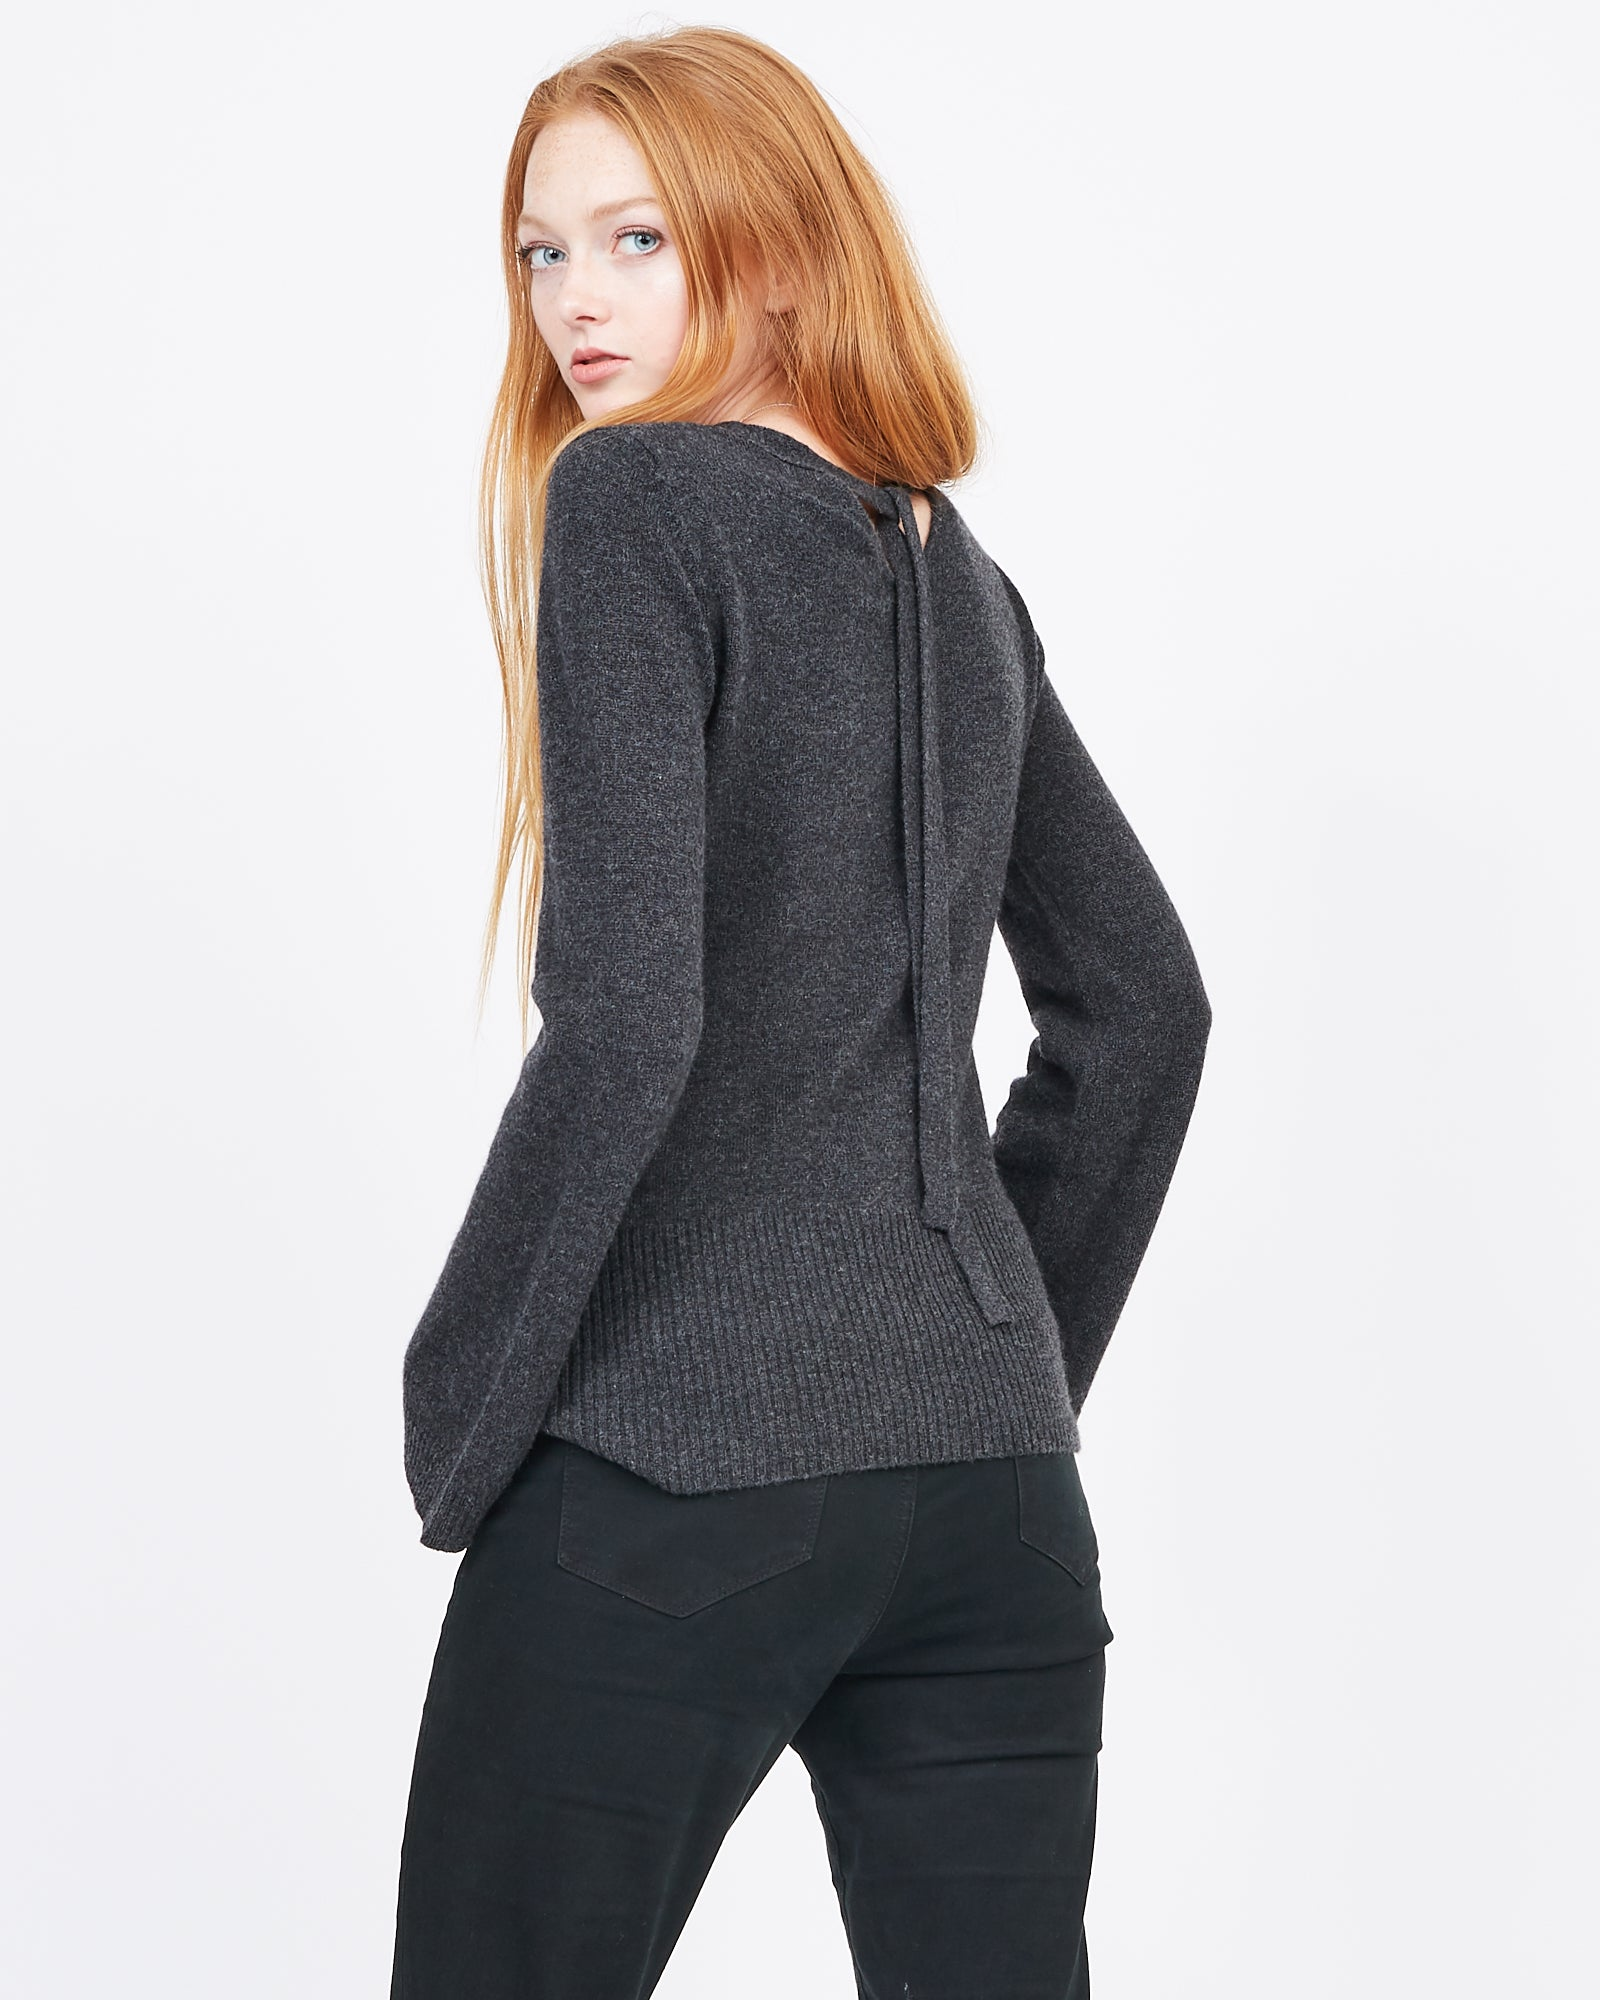 Bell Sleeved Cashmere sweater with back detail